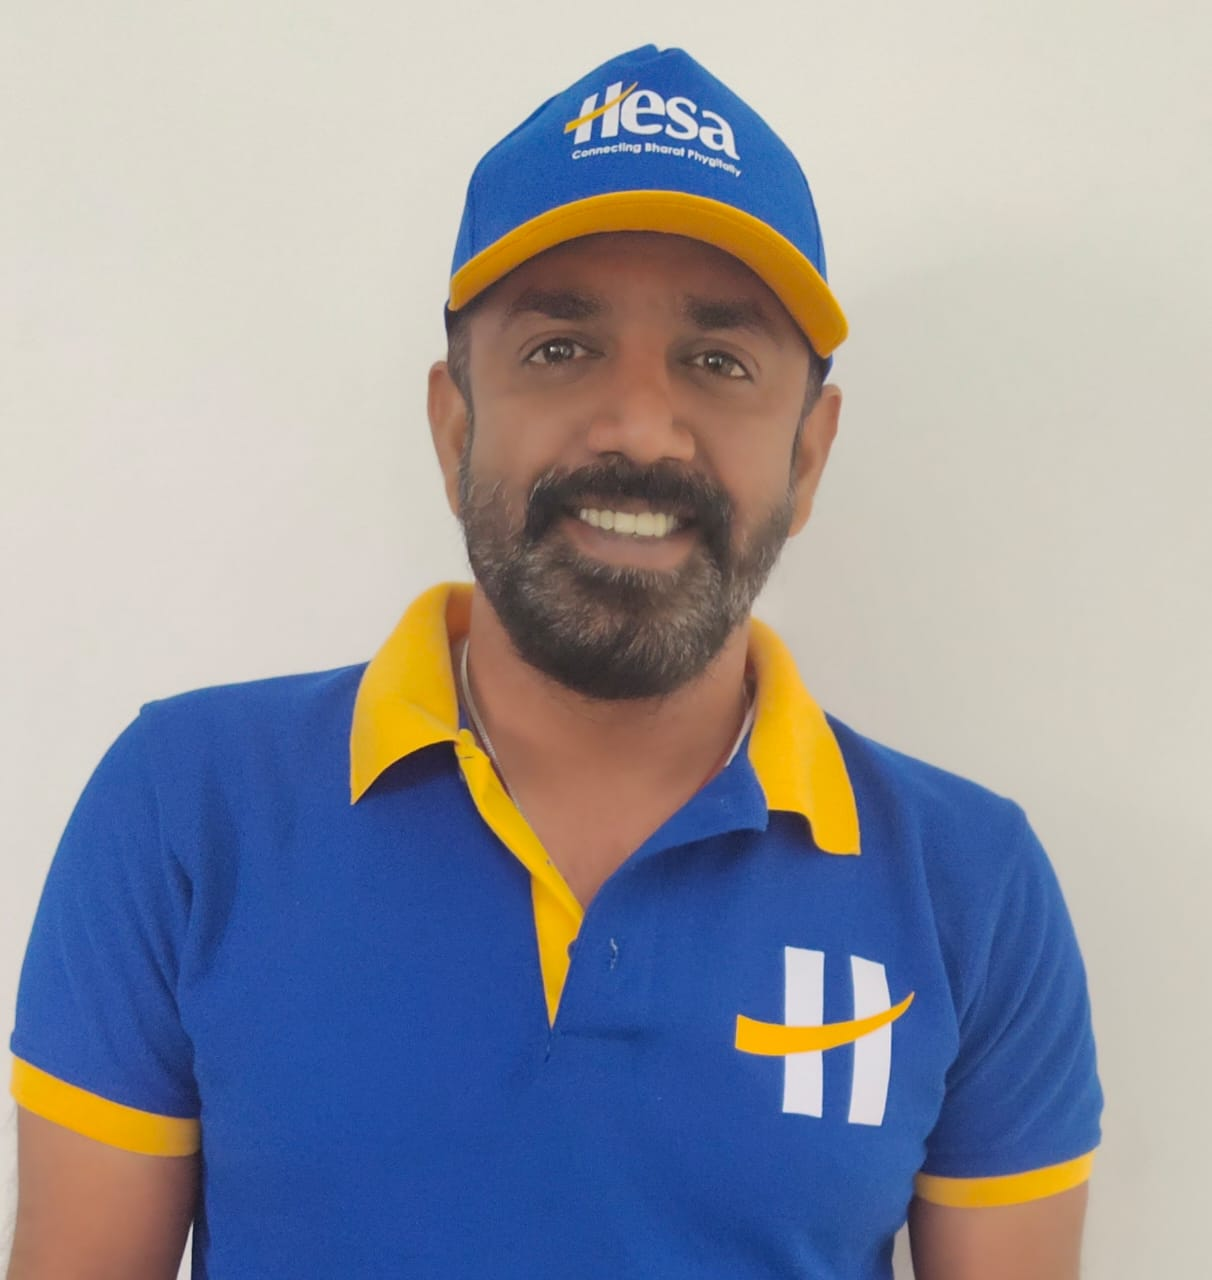 Vamsi Udayagiri - Skills Can Be Taught but the Person's Character and the  Right Attitude Are either There or Not There (Founder and CEO – Hesa)